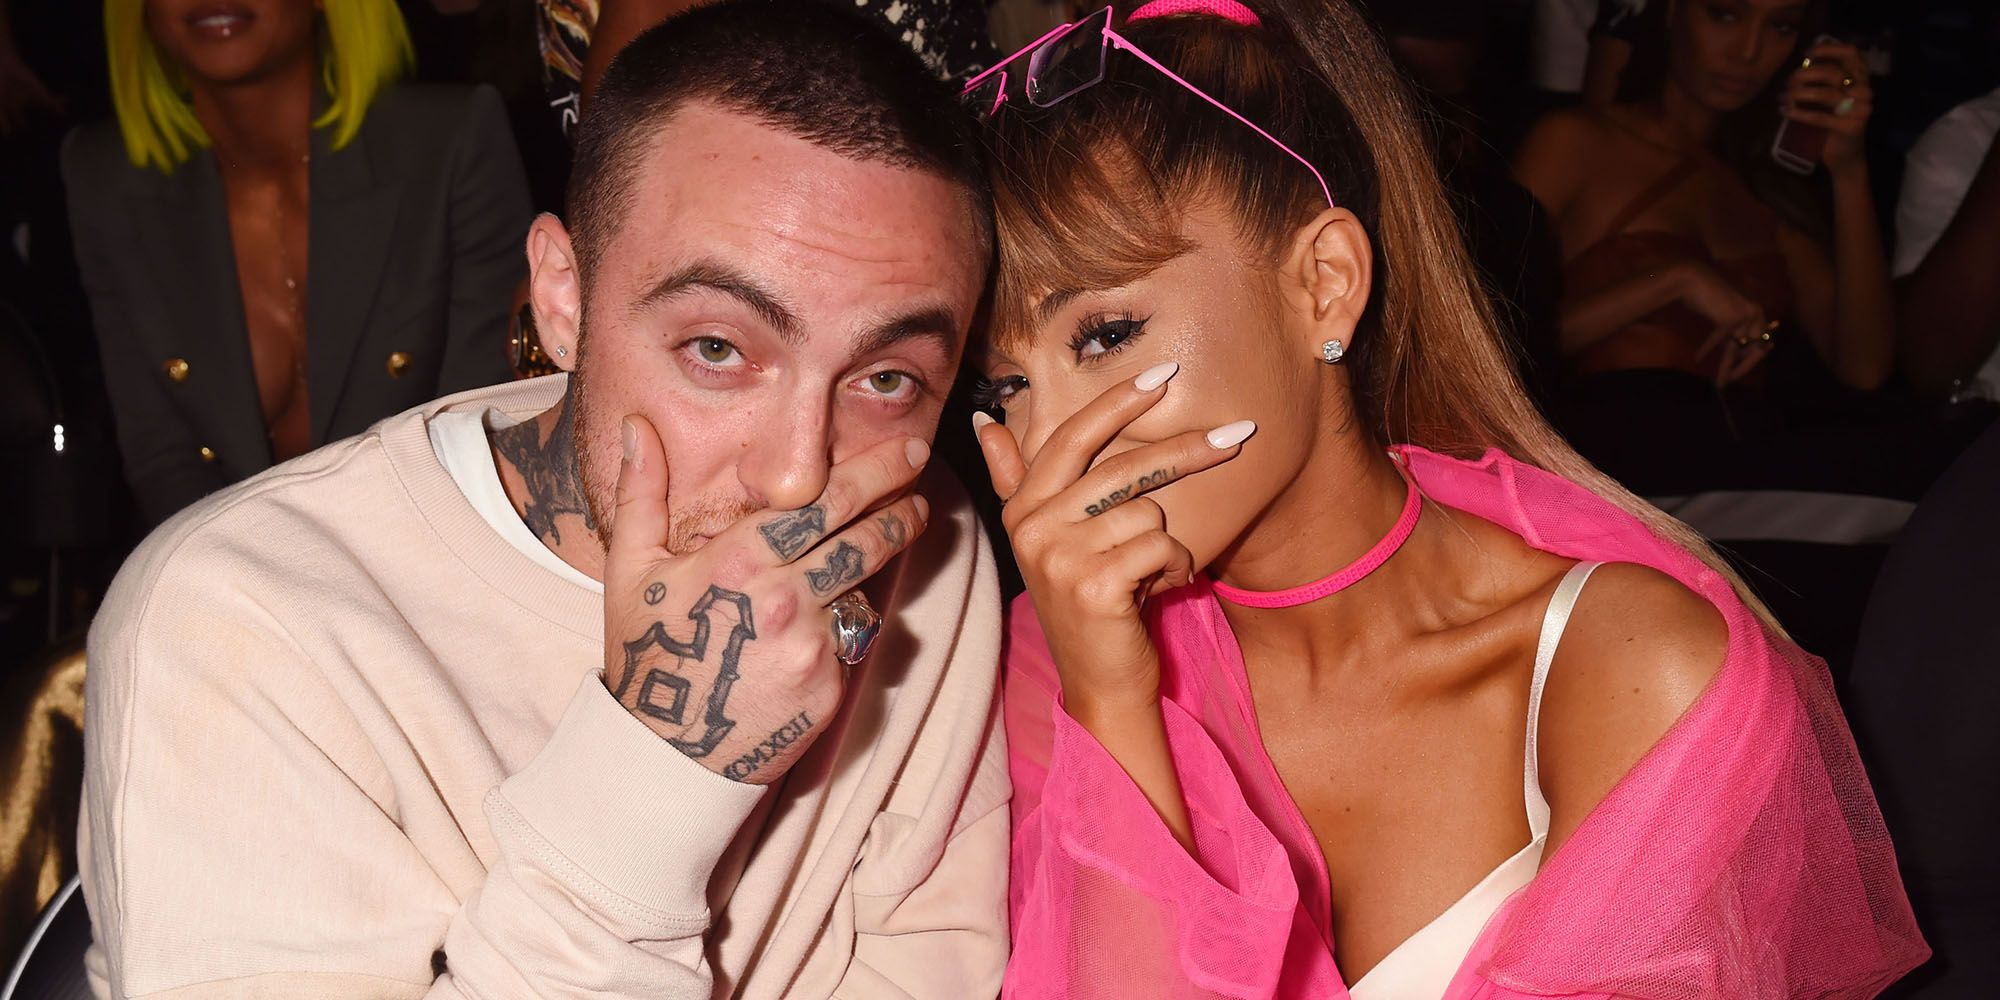 Ariana grande dating mac miller ellen